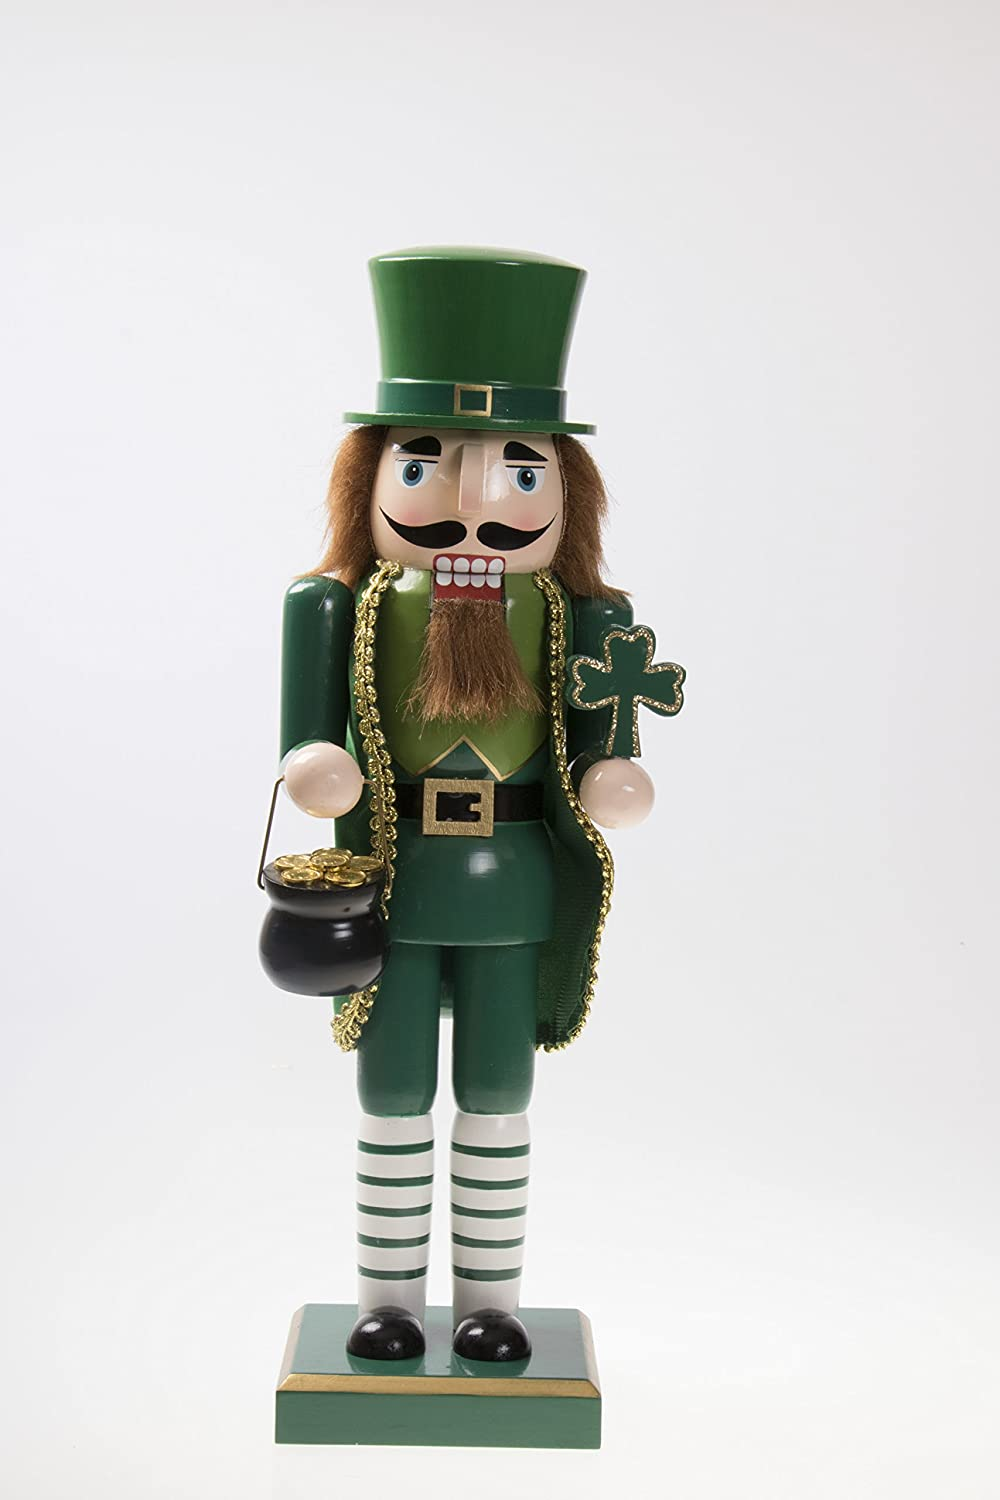 Clever Creations Traditional Irish Wooden Christmas Nutcracker Festive Holiday Decor | Wearing Green Holding Shamrock and Pot of Gold | Luck of The Irish | 100% Wood | 14